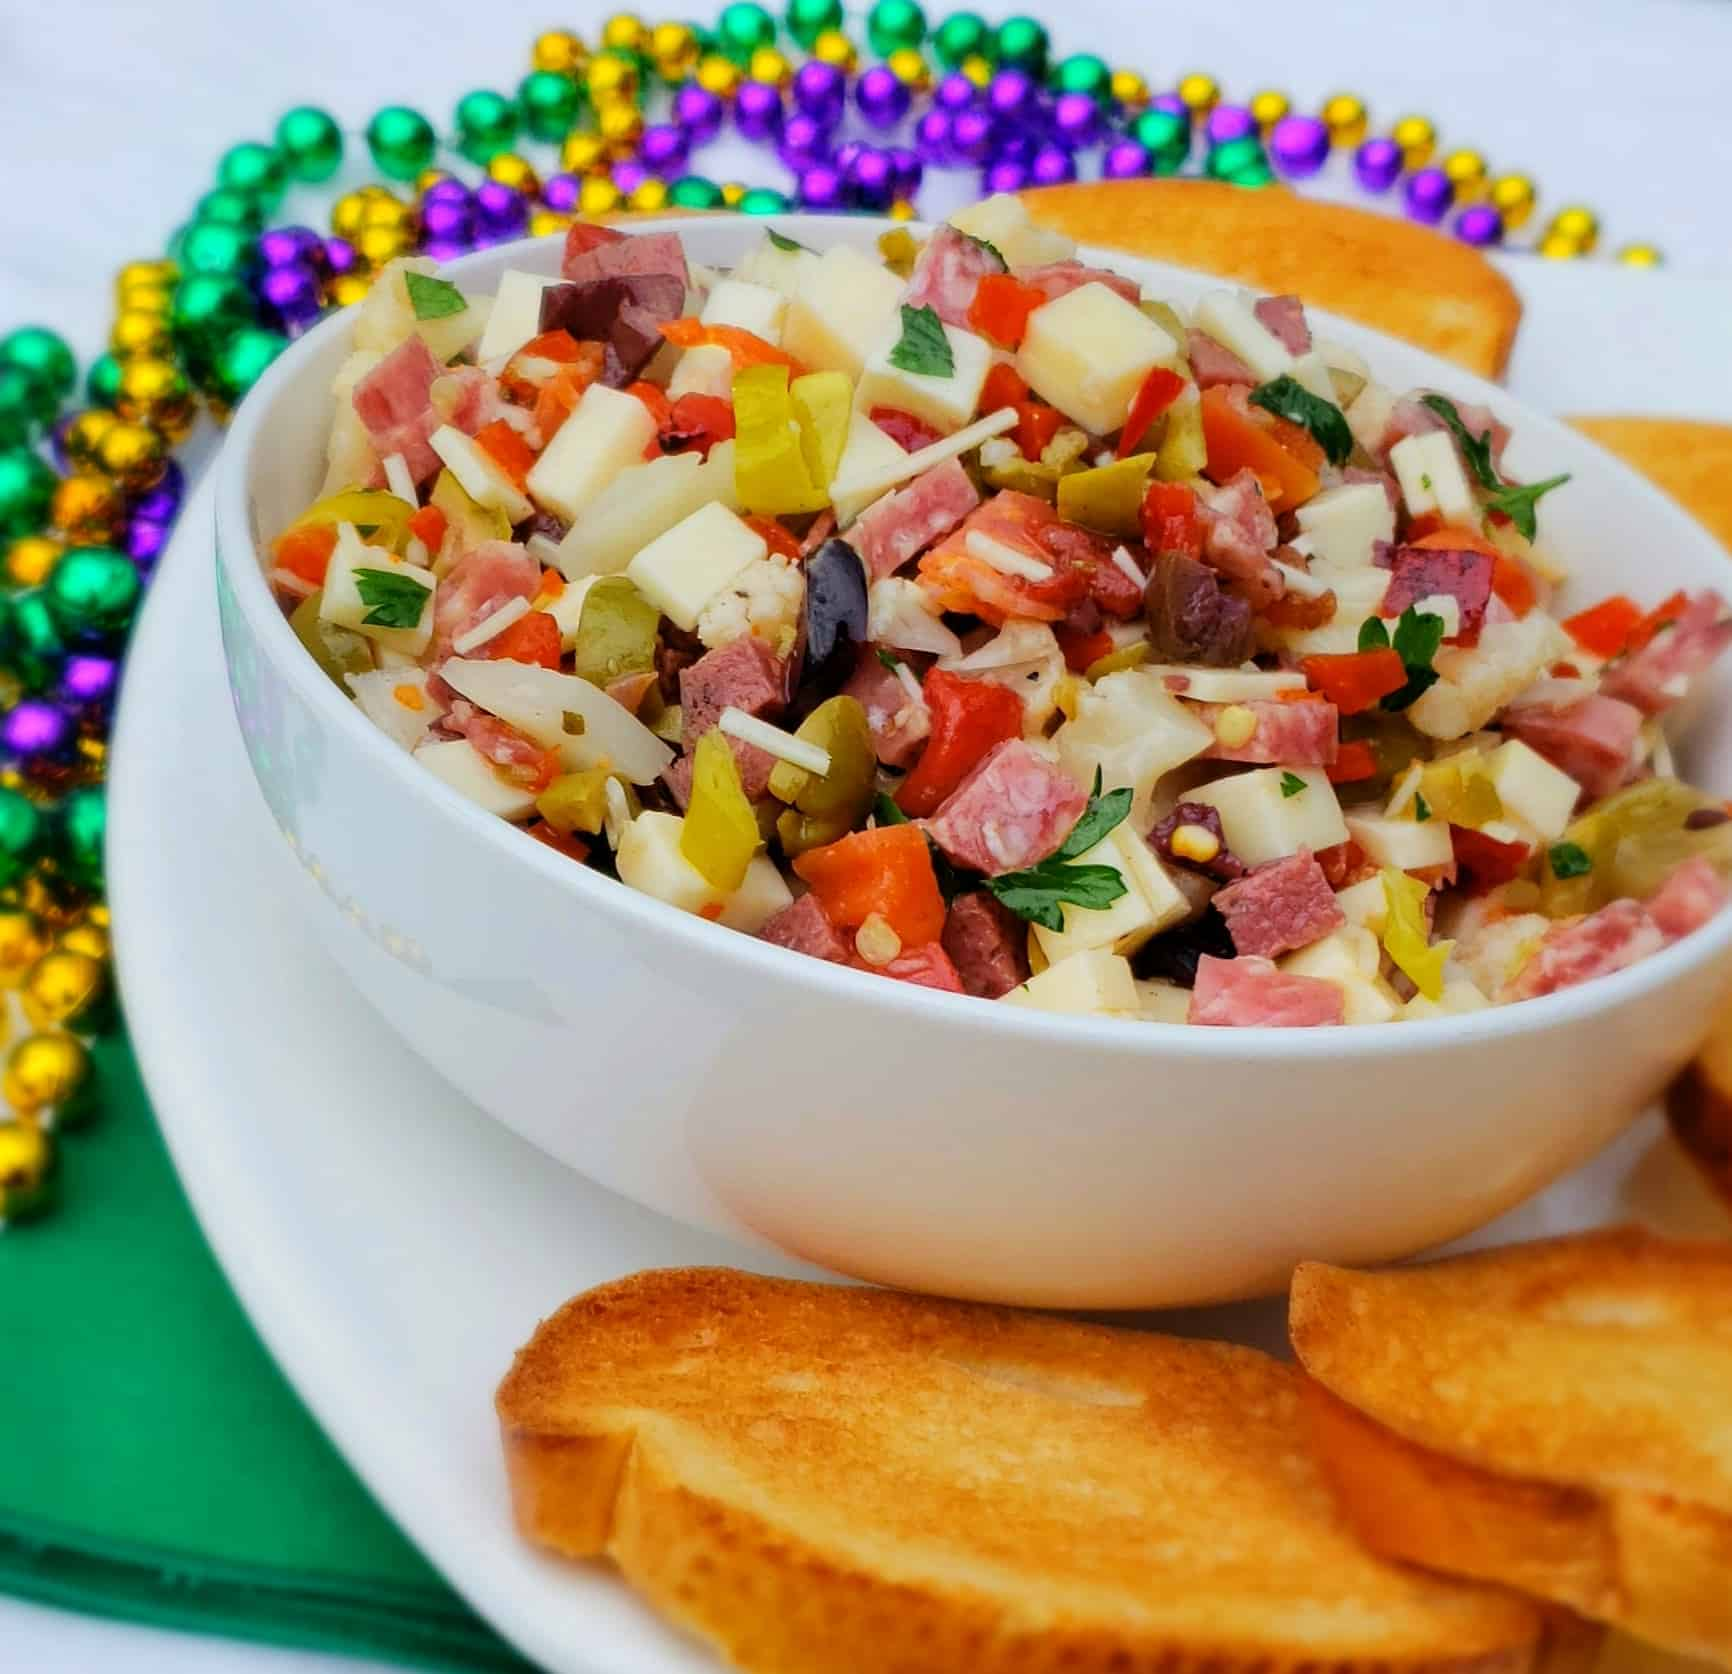 chopped meats and cheeses in a white bowl with mardi gra beads